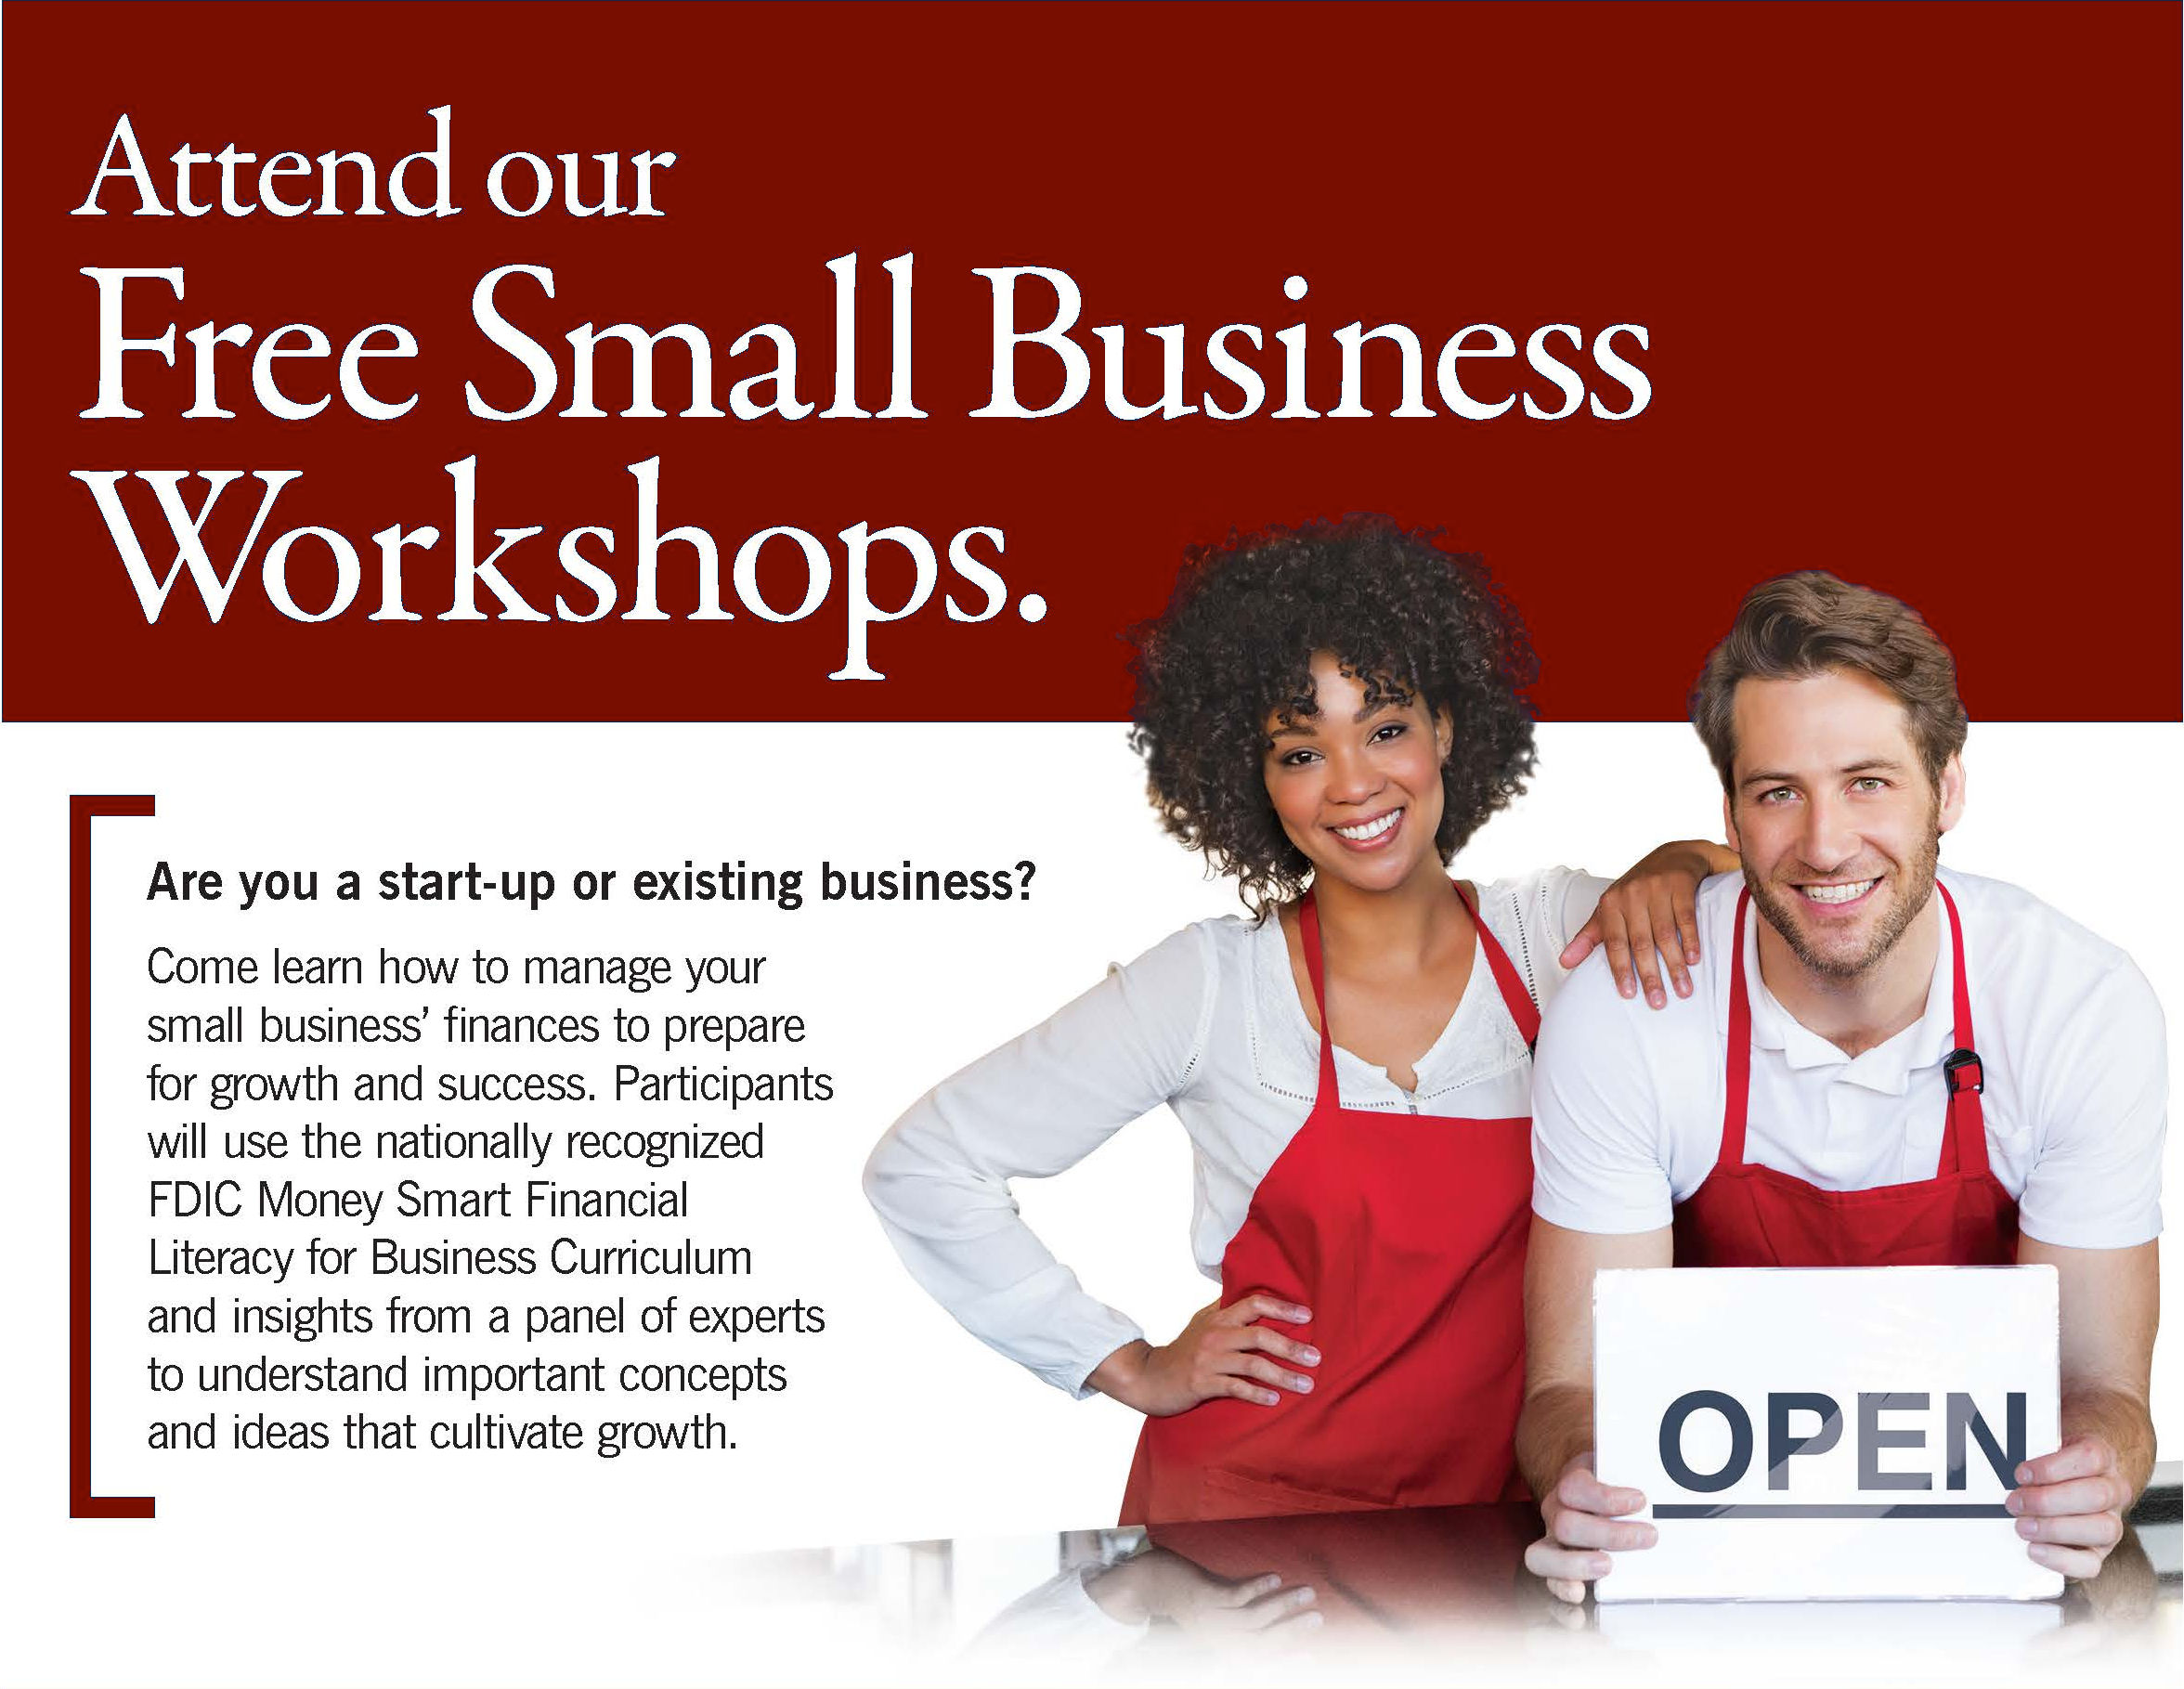 Small Business Workshops provided by Ohio Savings Bank